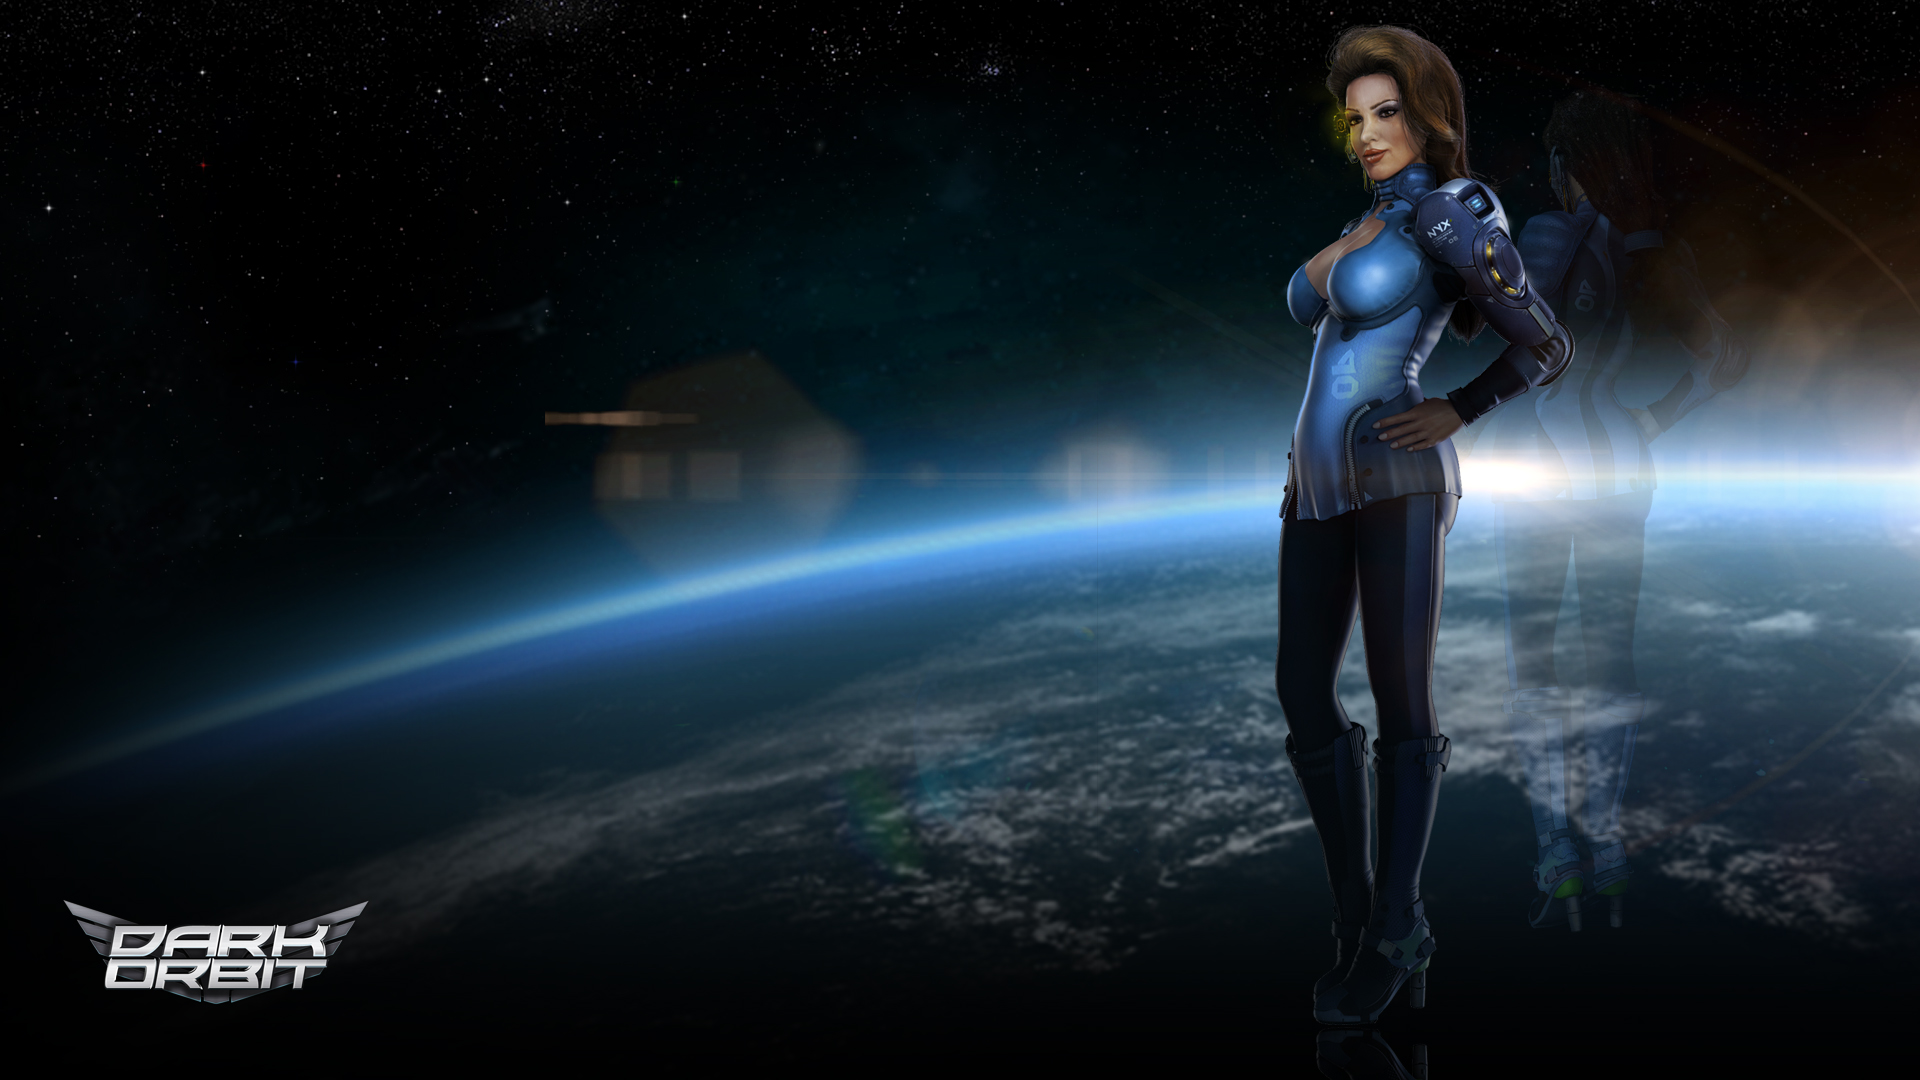 darkorbit invasion